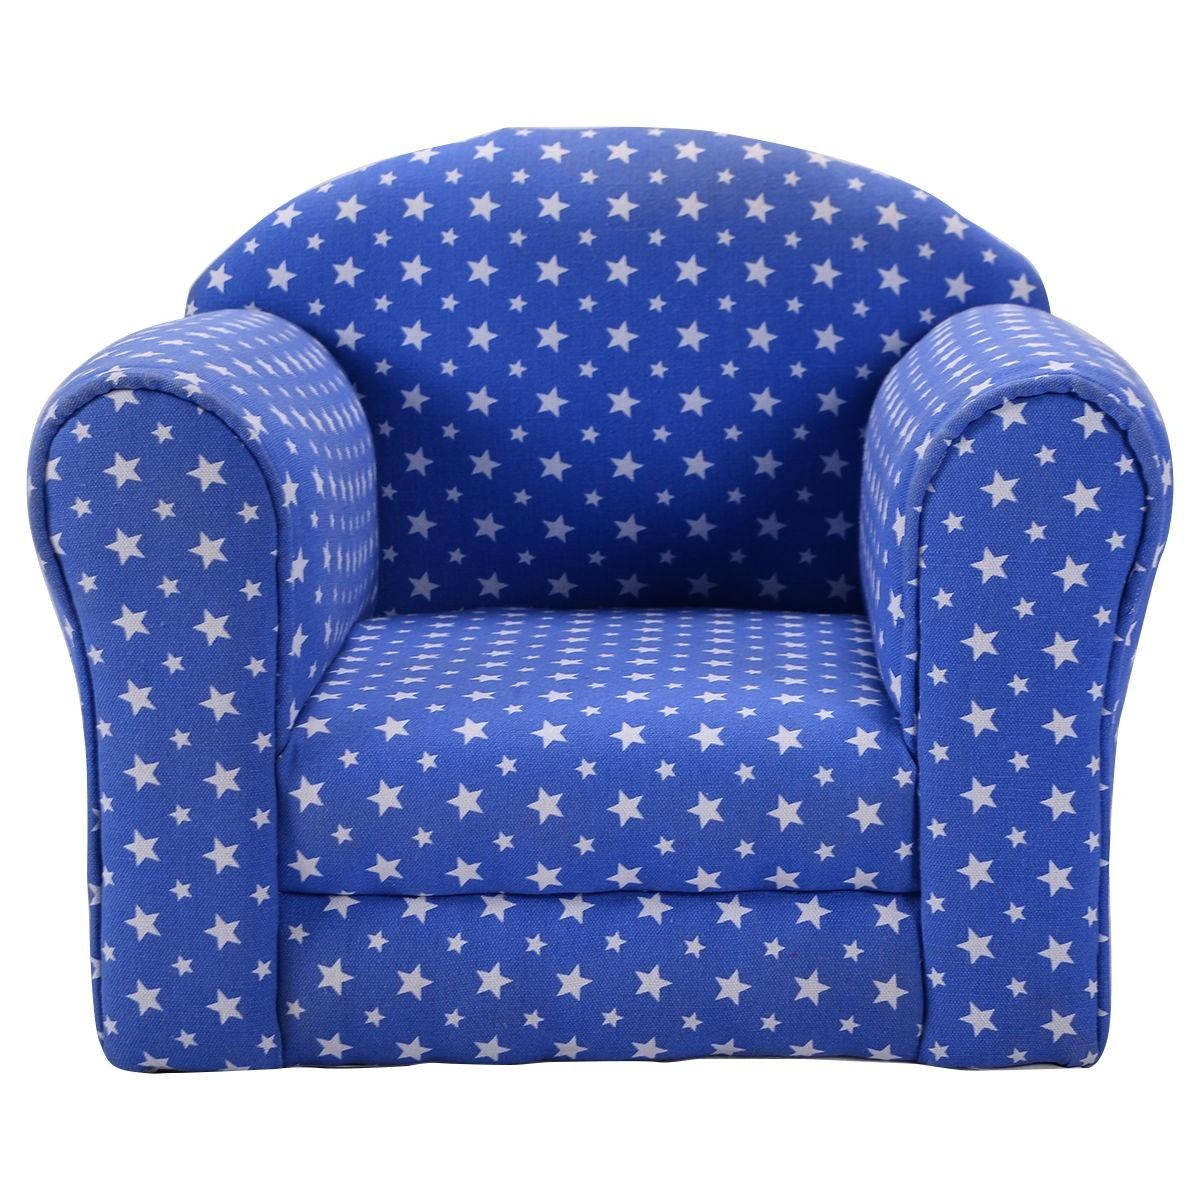 Heart Shaped Printed Armrest Children Couch 2 Colors – Sofas Inside Children Sofa Chairs (View 18 of 22)